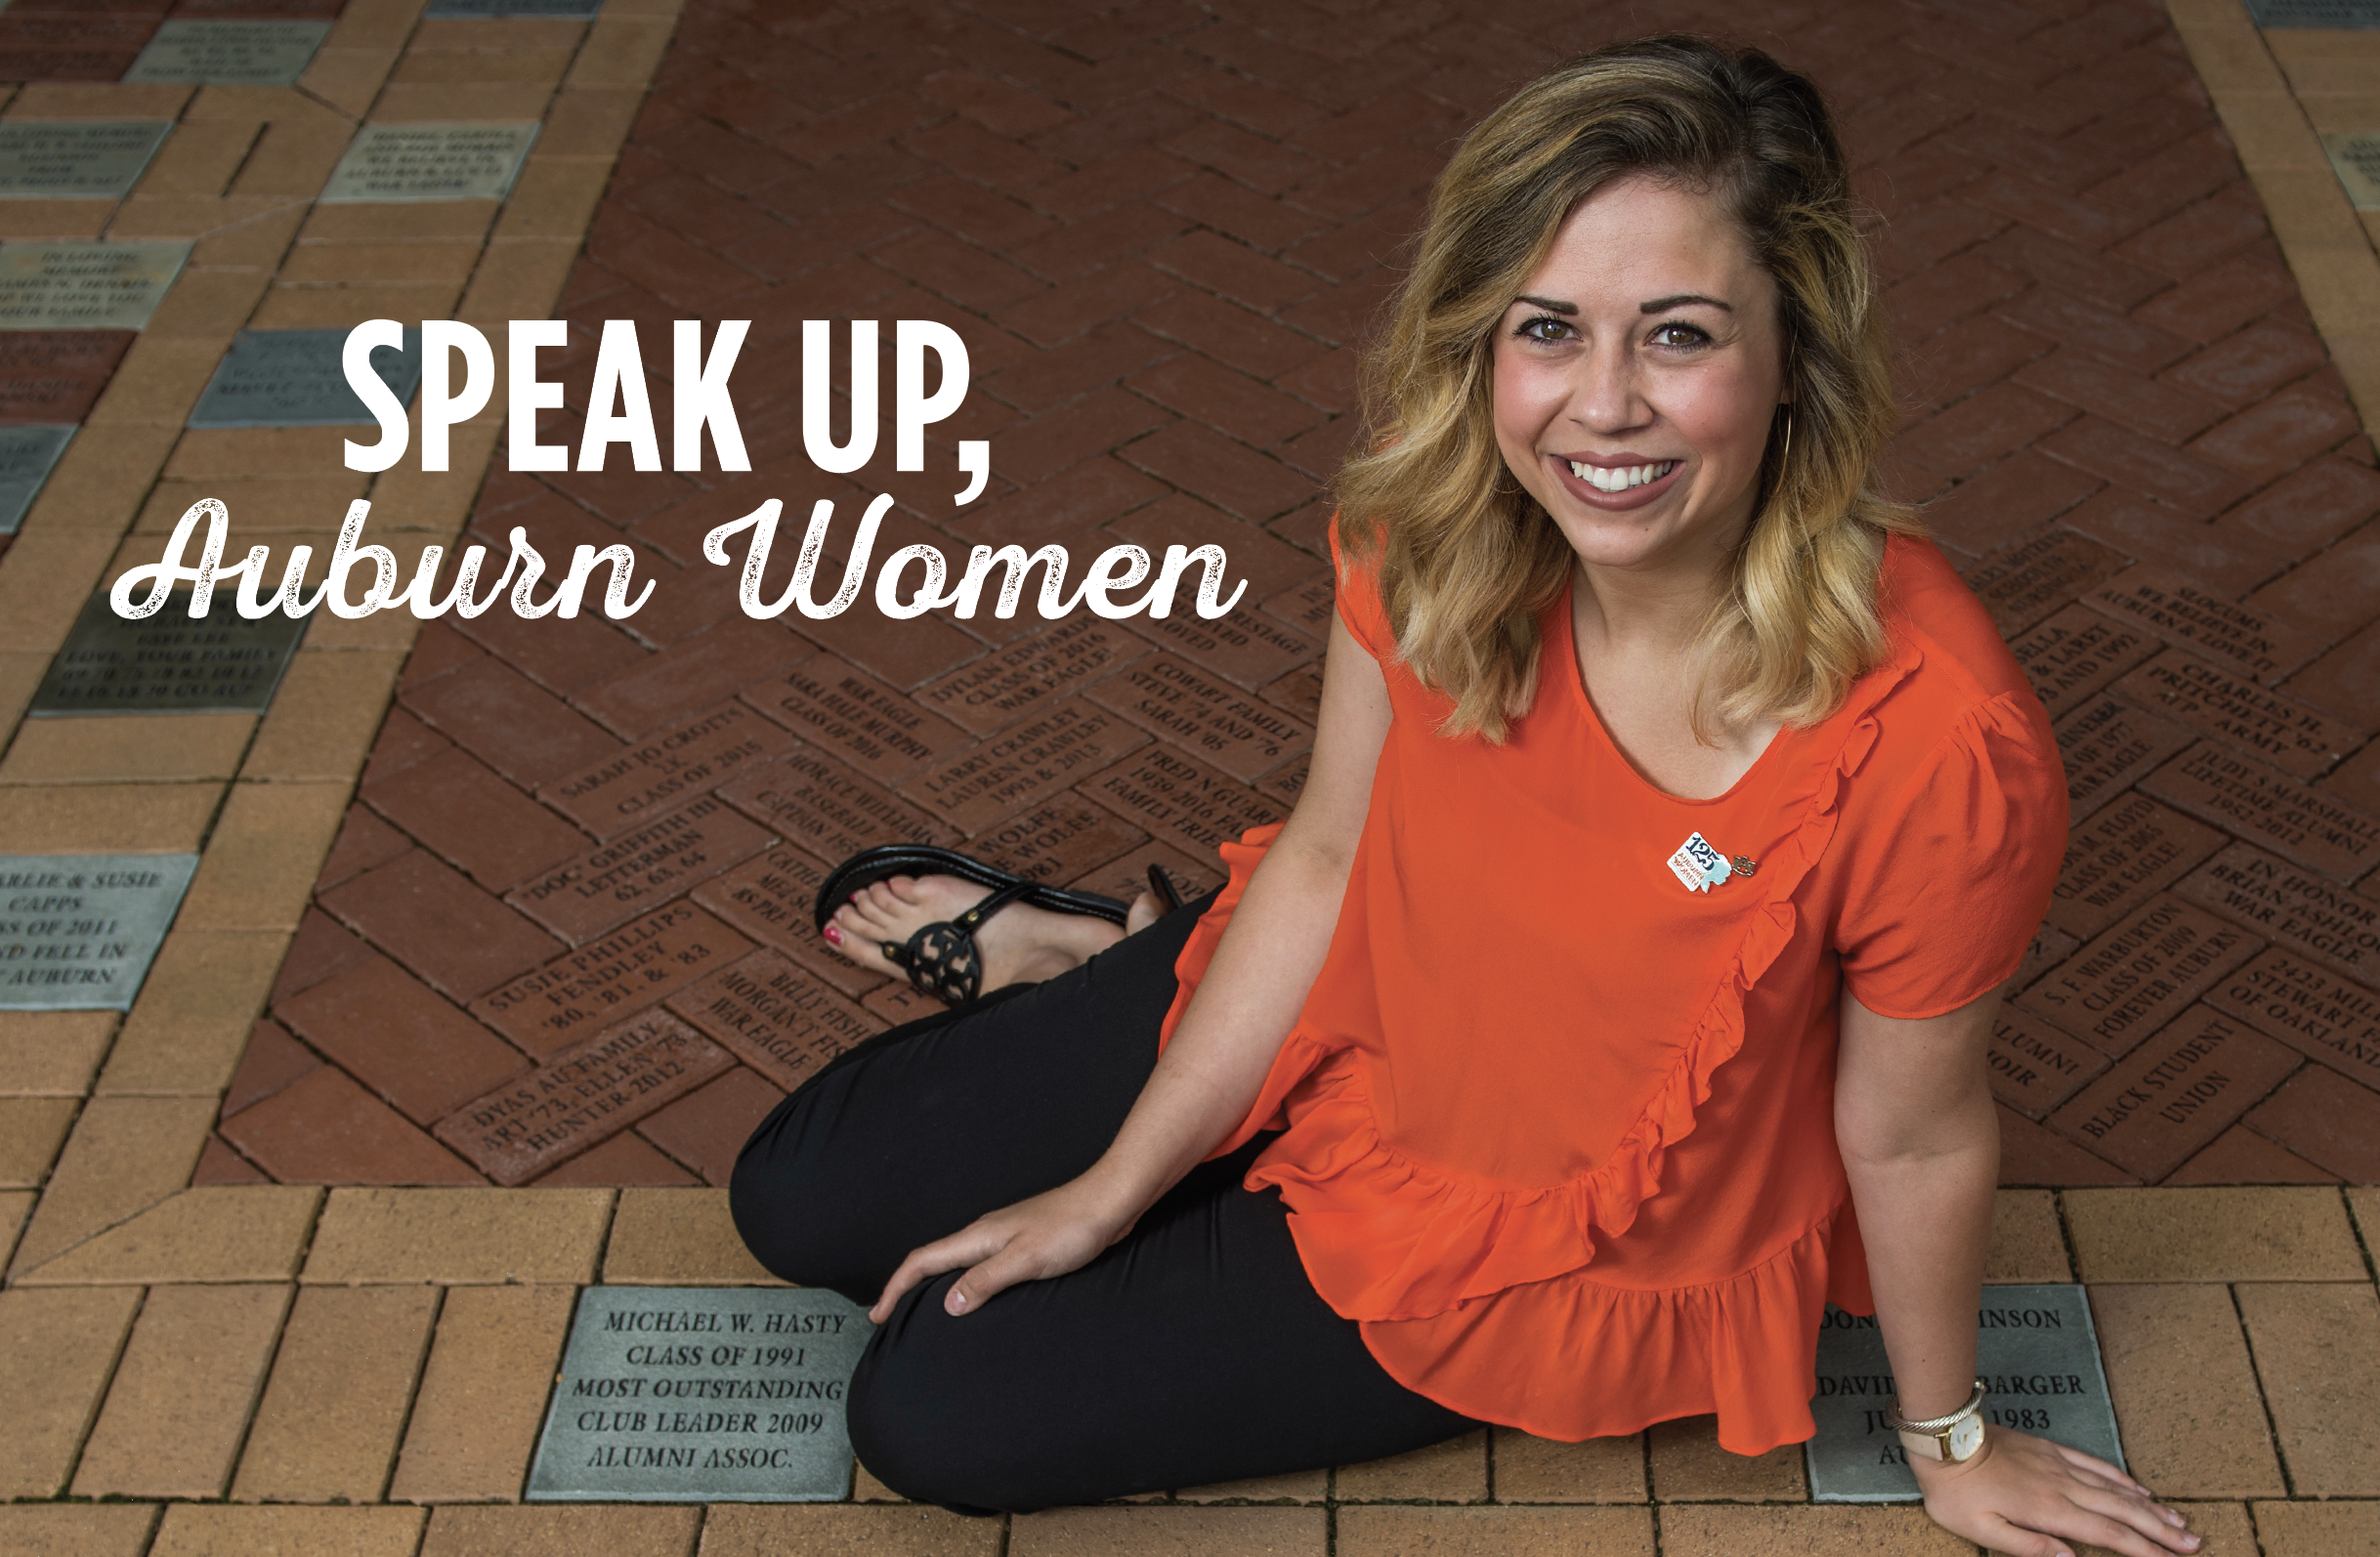 Speak Up, Auburn Women